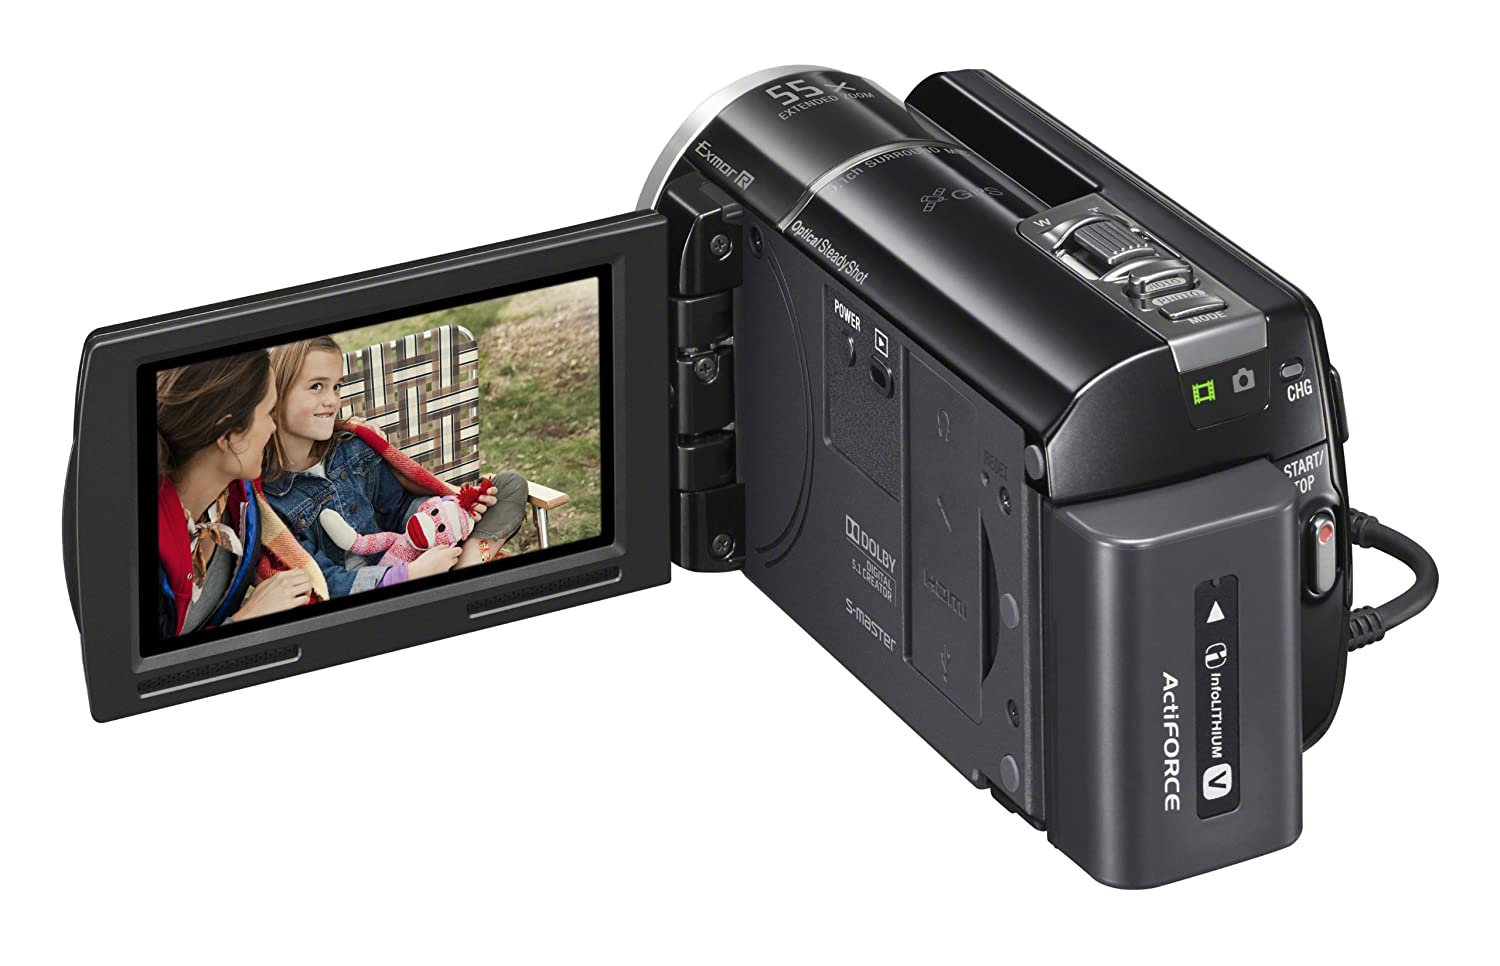 Sony hdr xr260e pocketbook 612 замена экрана